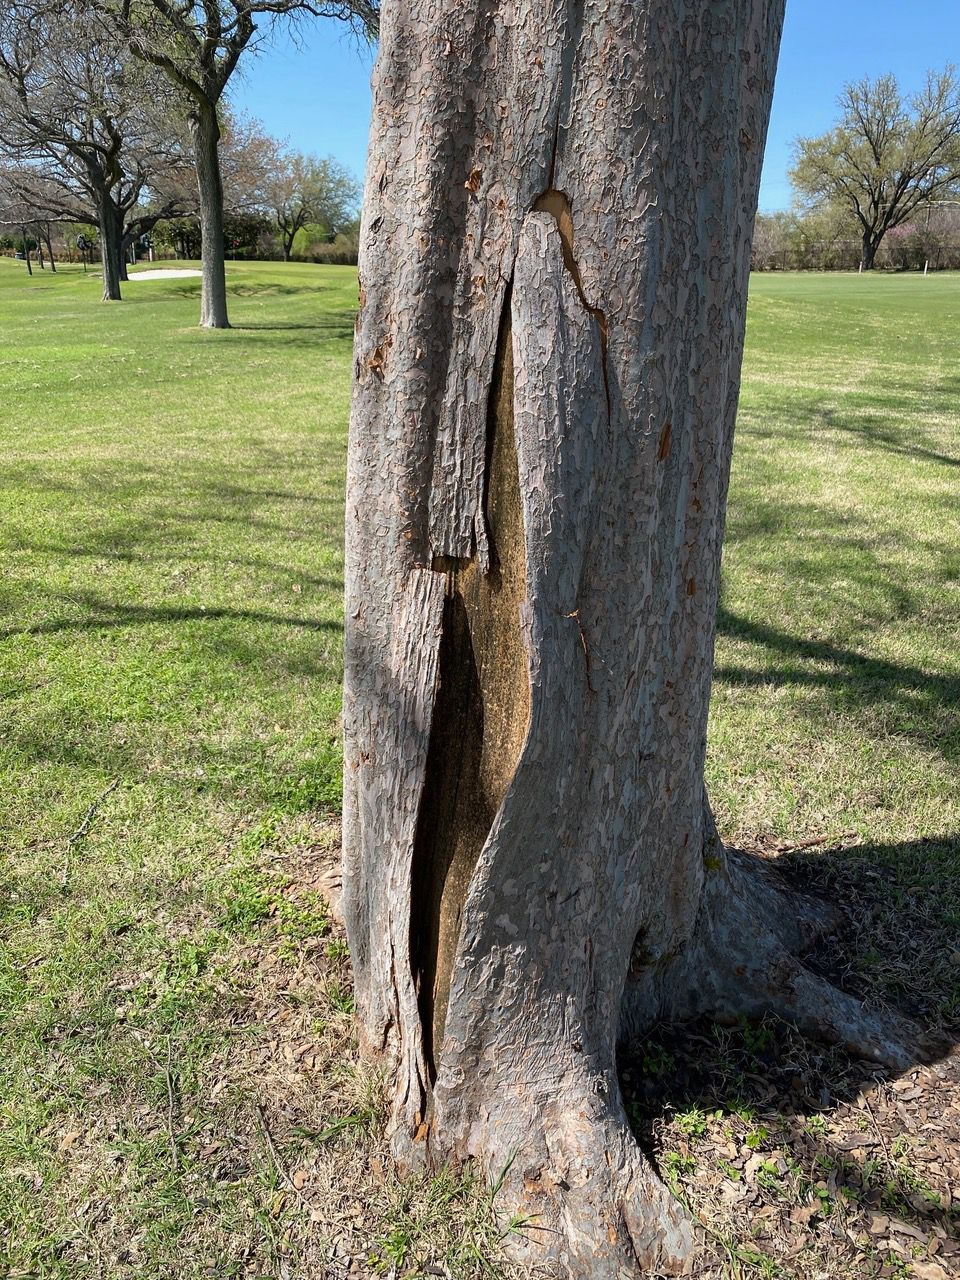 The freeze killed this lacebark elm tree. Lacebark elms aren't sturdy enough for North Texas, so don't bother replanting them.